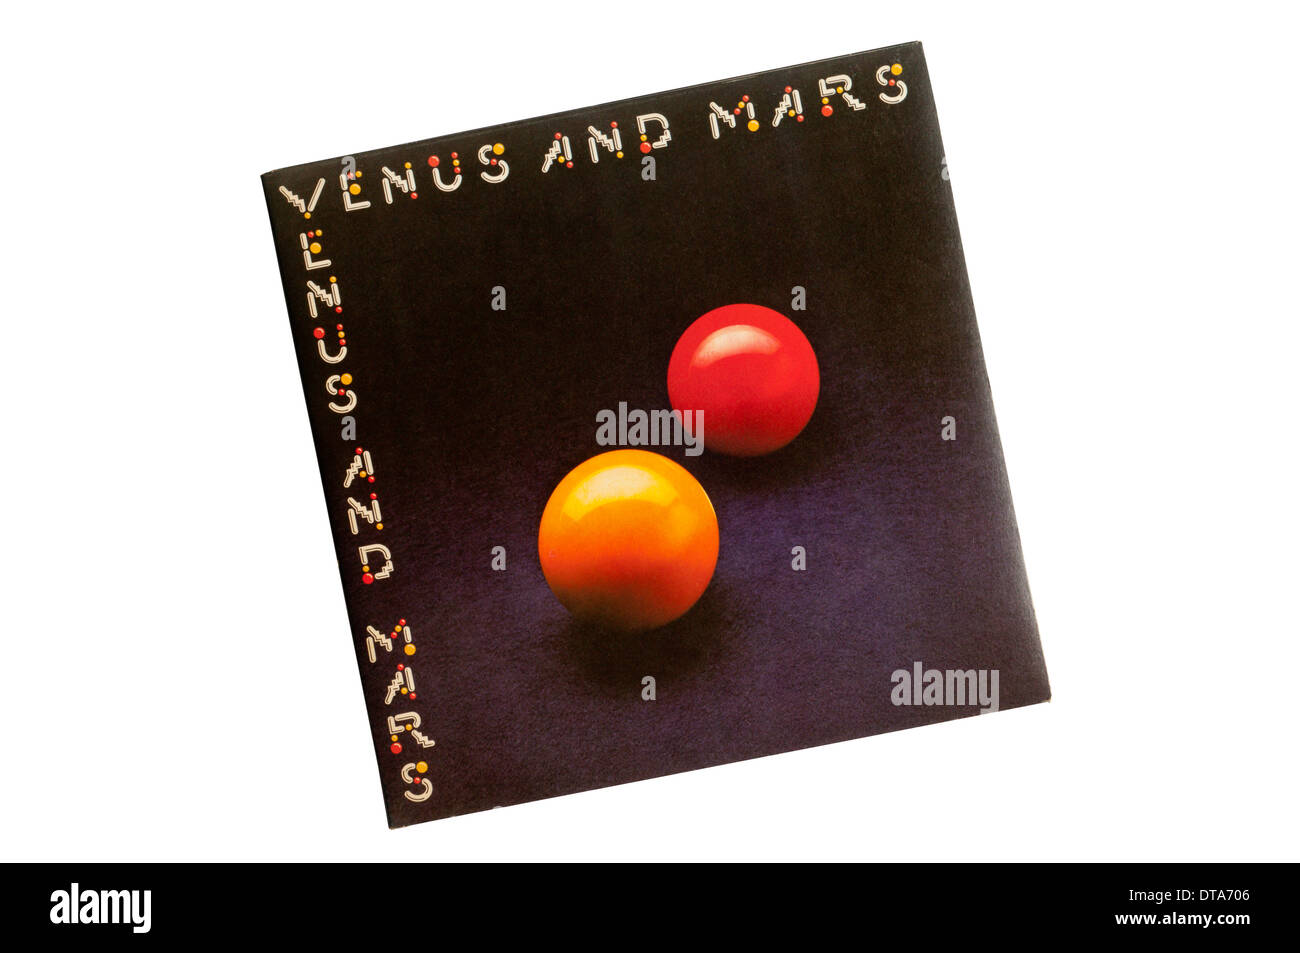 Venus and Mars was released in 1975 and was the fourth album